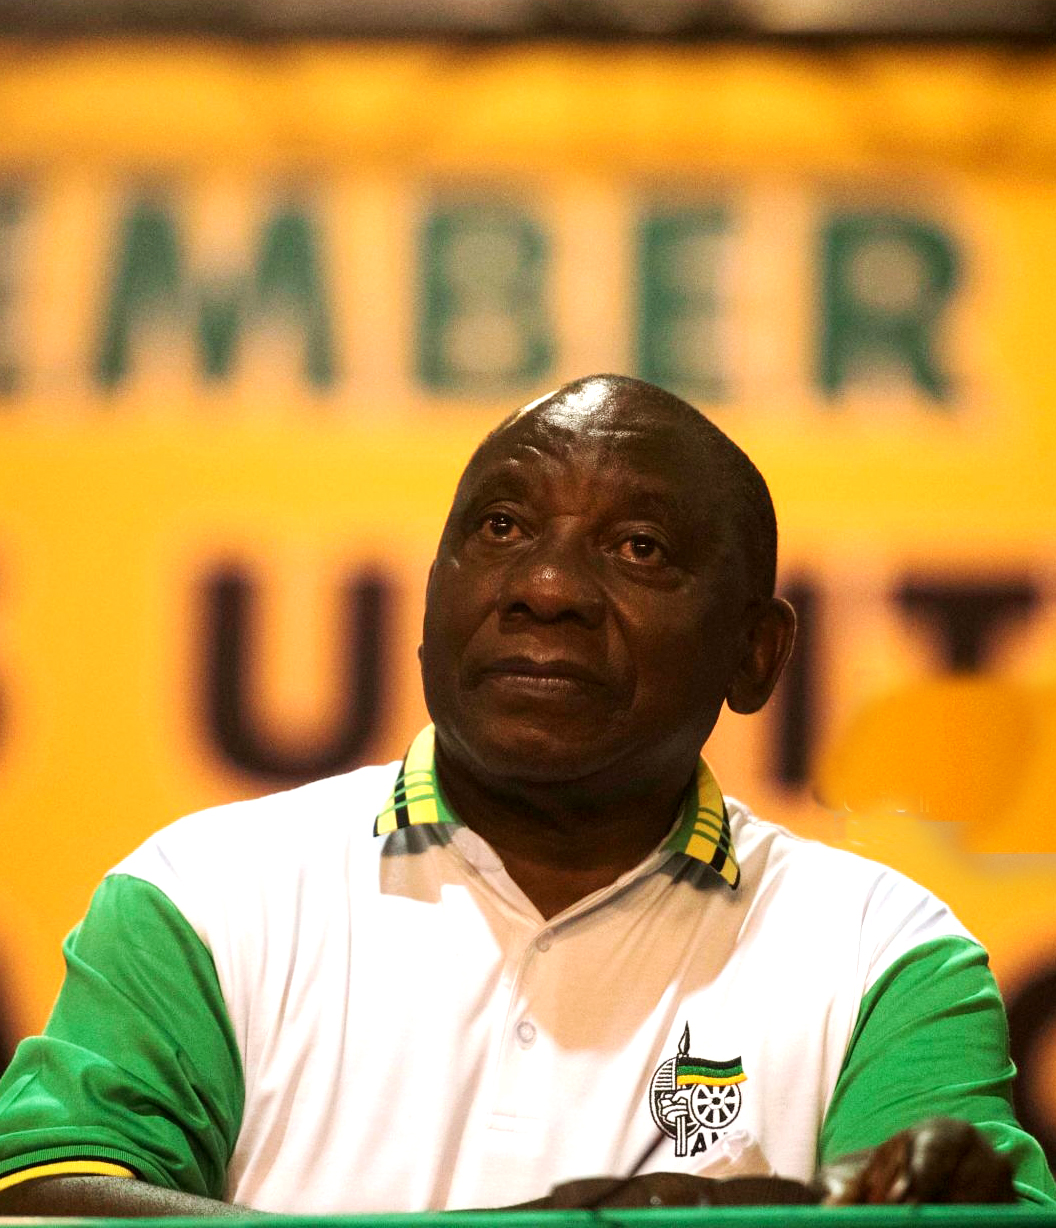 SOWETO, SOUTH AFRICA  DECEMBER 18: (SOUTH AFRICA OUT): New president of the ANC Cyril Ramaphosa  during the announcement of new party leadership at the 5th African National Congress (ANC) national conference at the Nasrec Expo Centre on December 18, 2017 in Soweto, South Africa. As ANC delegates supporters of the two presidential candidates were equally confident that their preferred choice will be announced as the new president of the ANC. The race was between Nkosazana Dlamini-Zuma and Cyril Ramaphosa the only two nominees for the party's top position. (Photo by Alet Pretorius/Gallo Images/Getty Images)